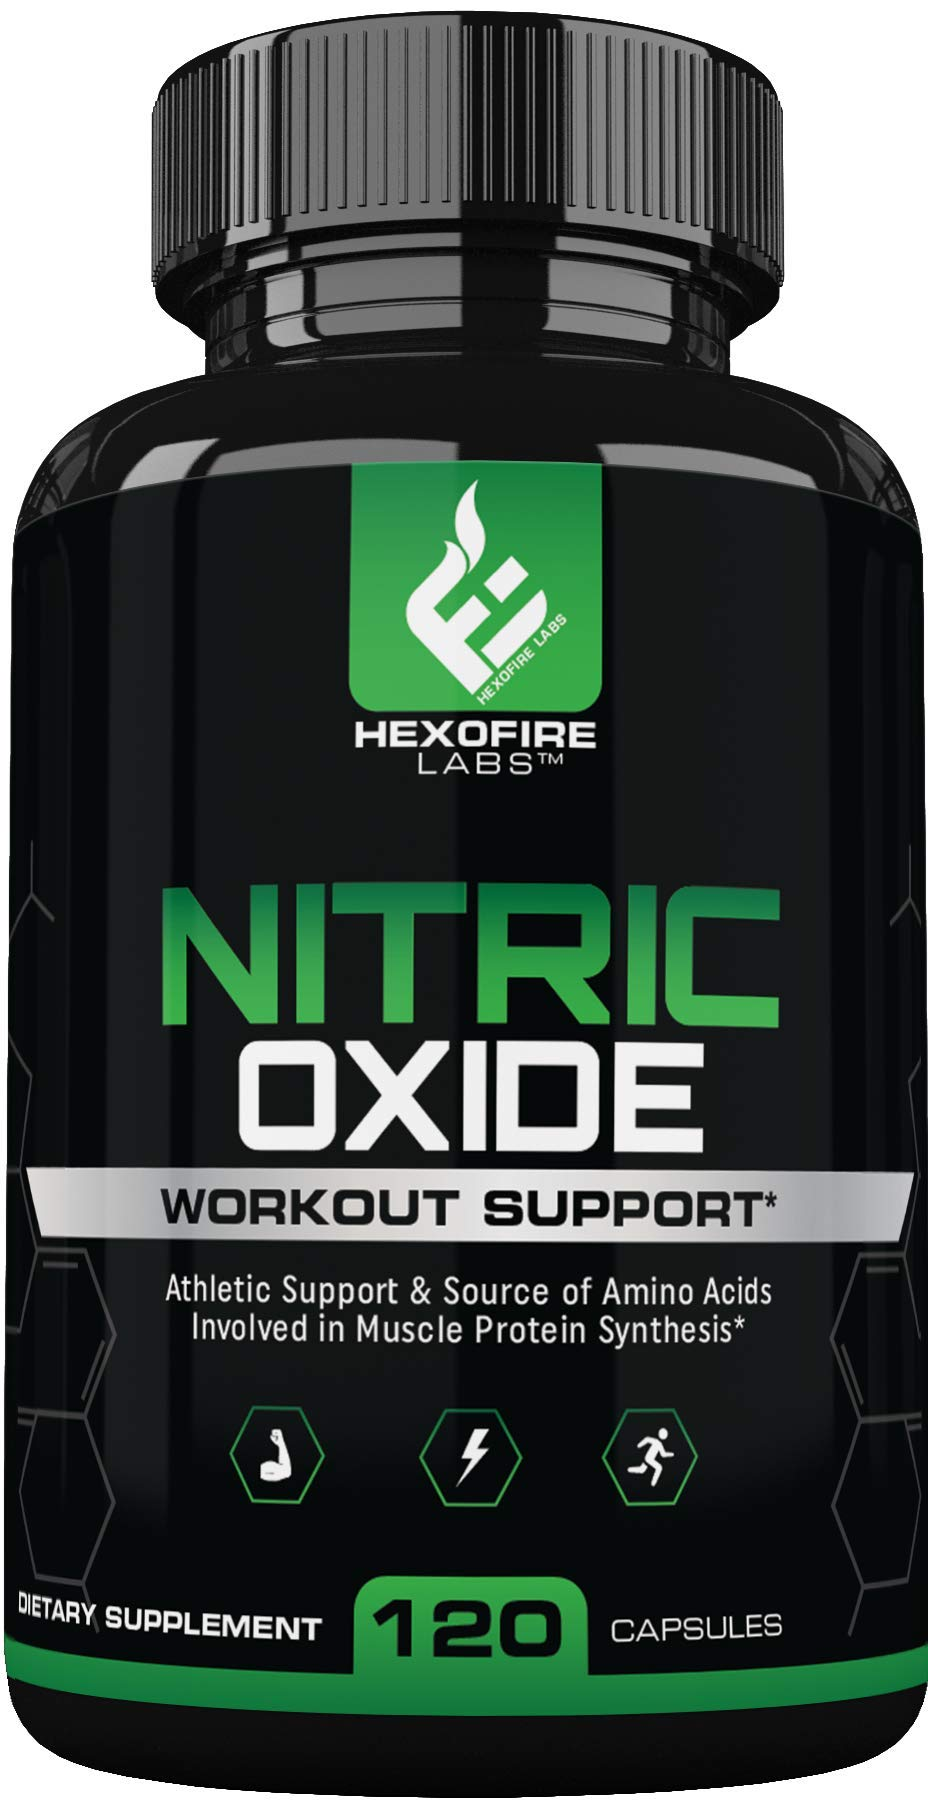 HexoFire Labs Nitric Oxide, Nitric Oxide Workout Support Capsules, L-Citrulline DL Malate L-Arginine & 9 Vitamin Blend, 120 Capsules (30 Day Supply)